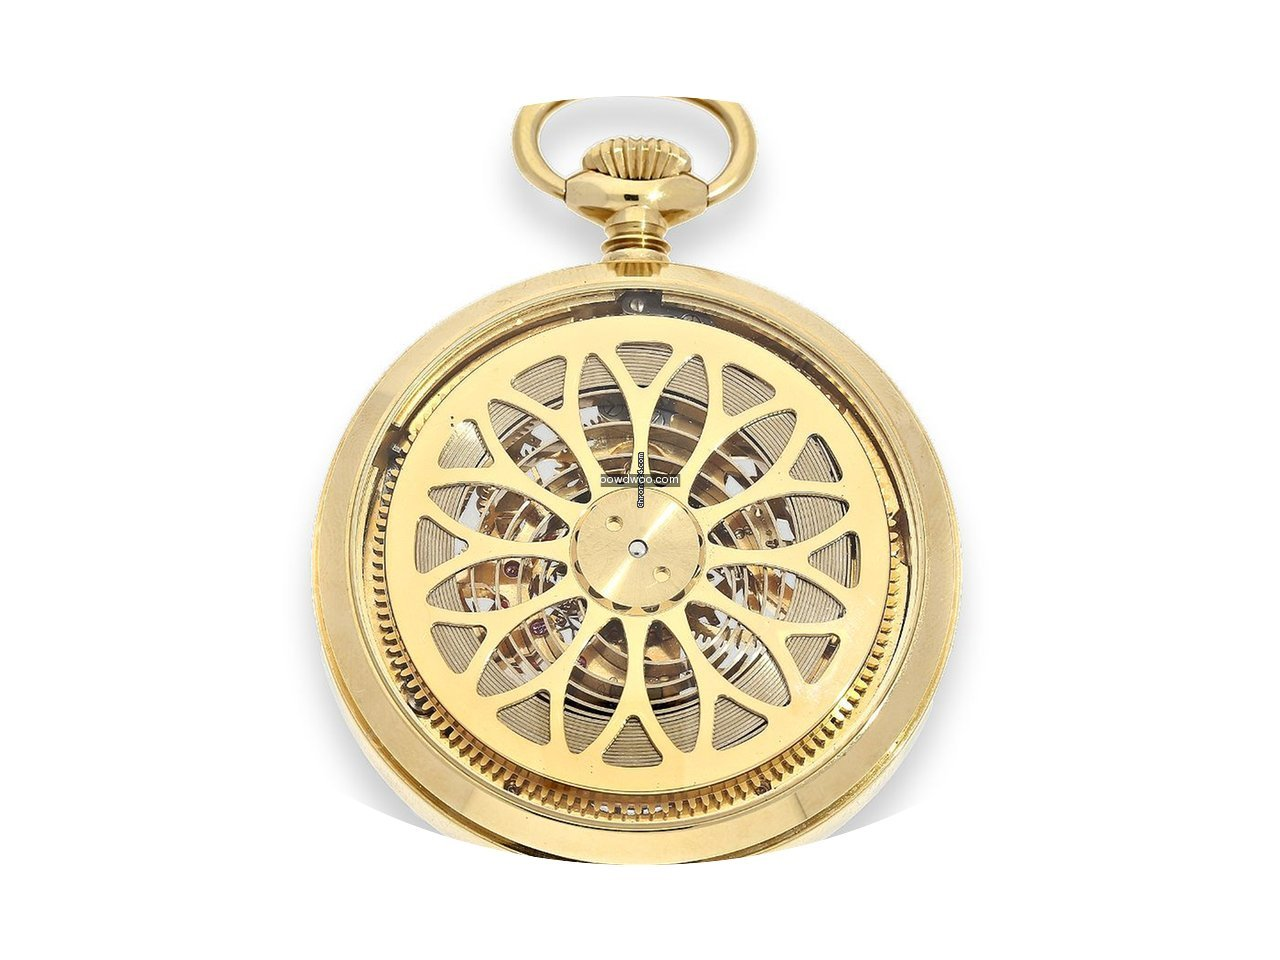 Hebdomas Pocket watch: rare skeletonized...